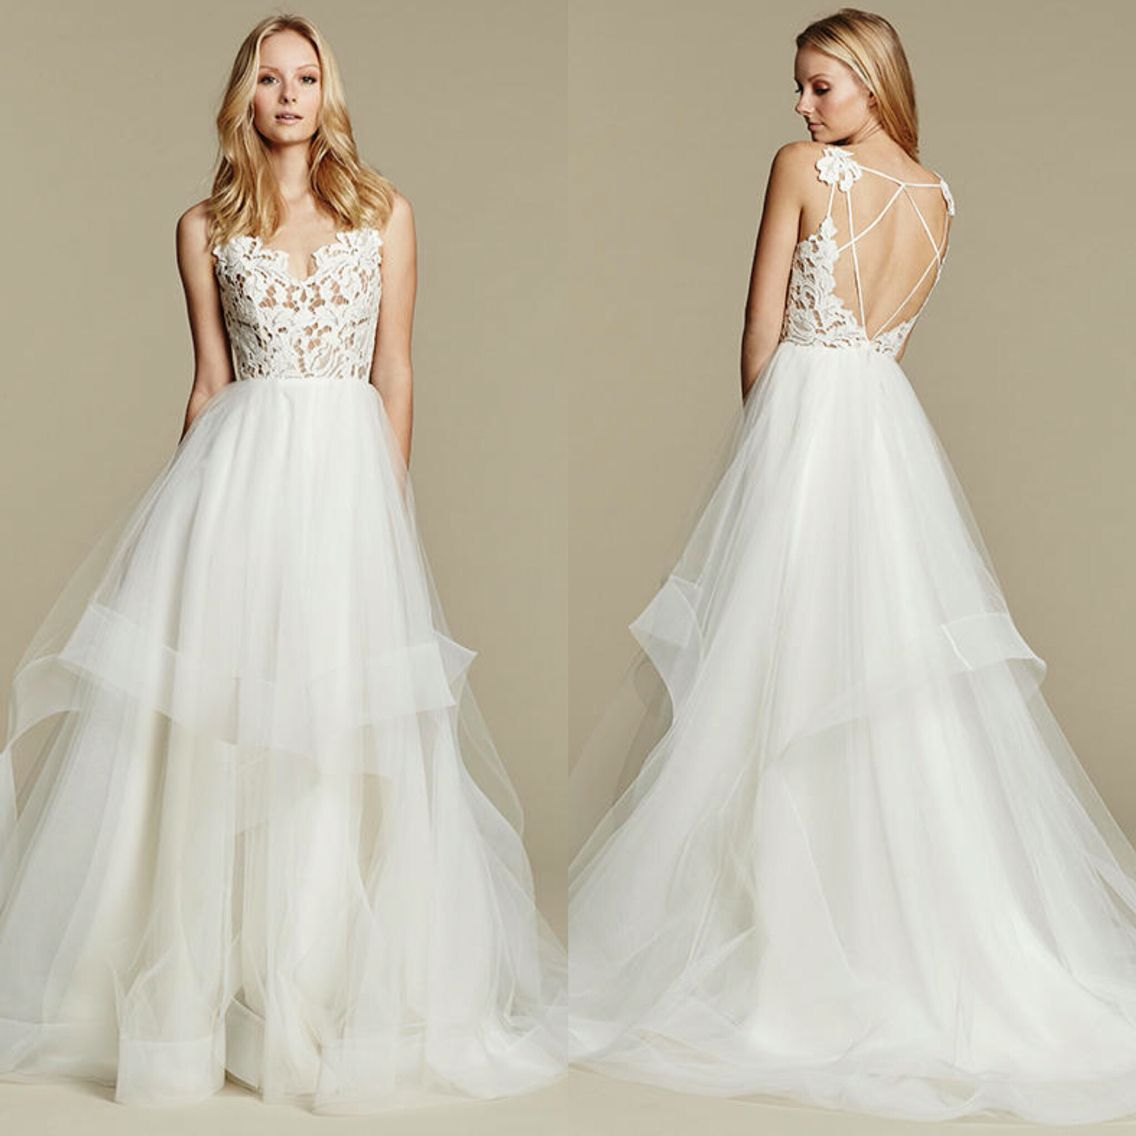 How much are hayley paige wedding dresses  Tag a friend who is shopping for a wedding dress They will want to